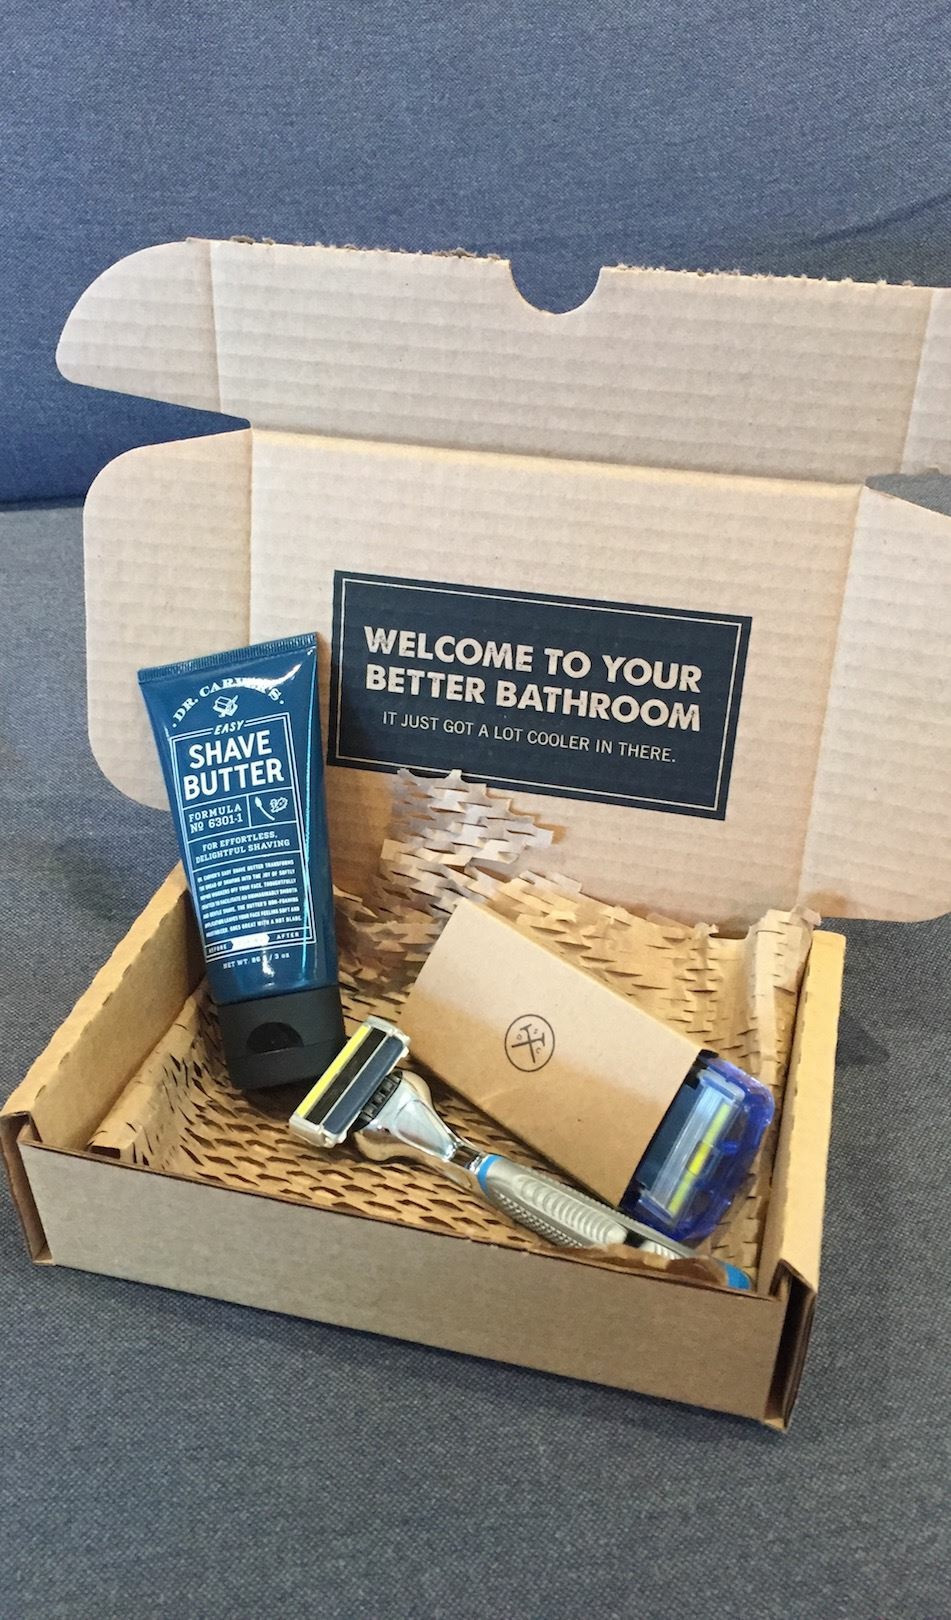 Dollar Shave Club product & packaging